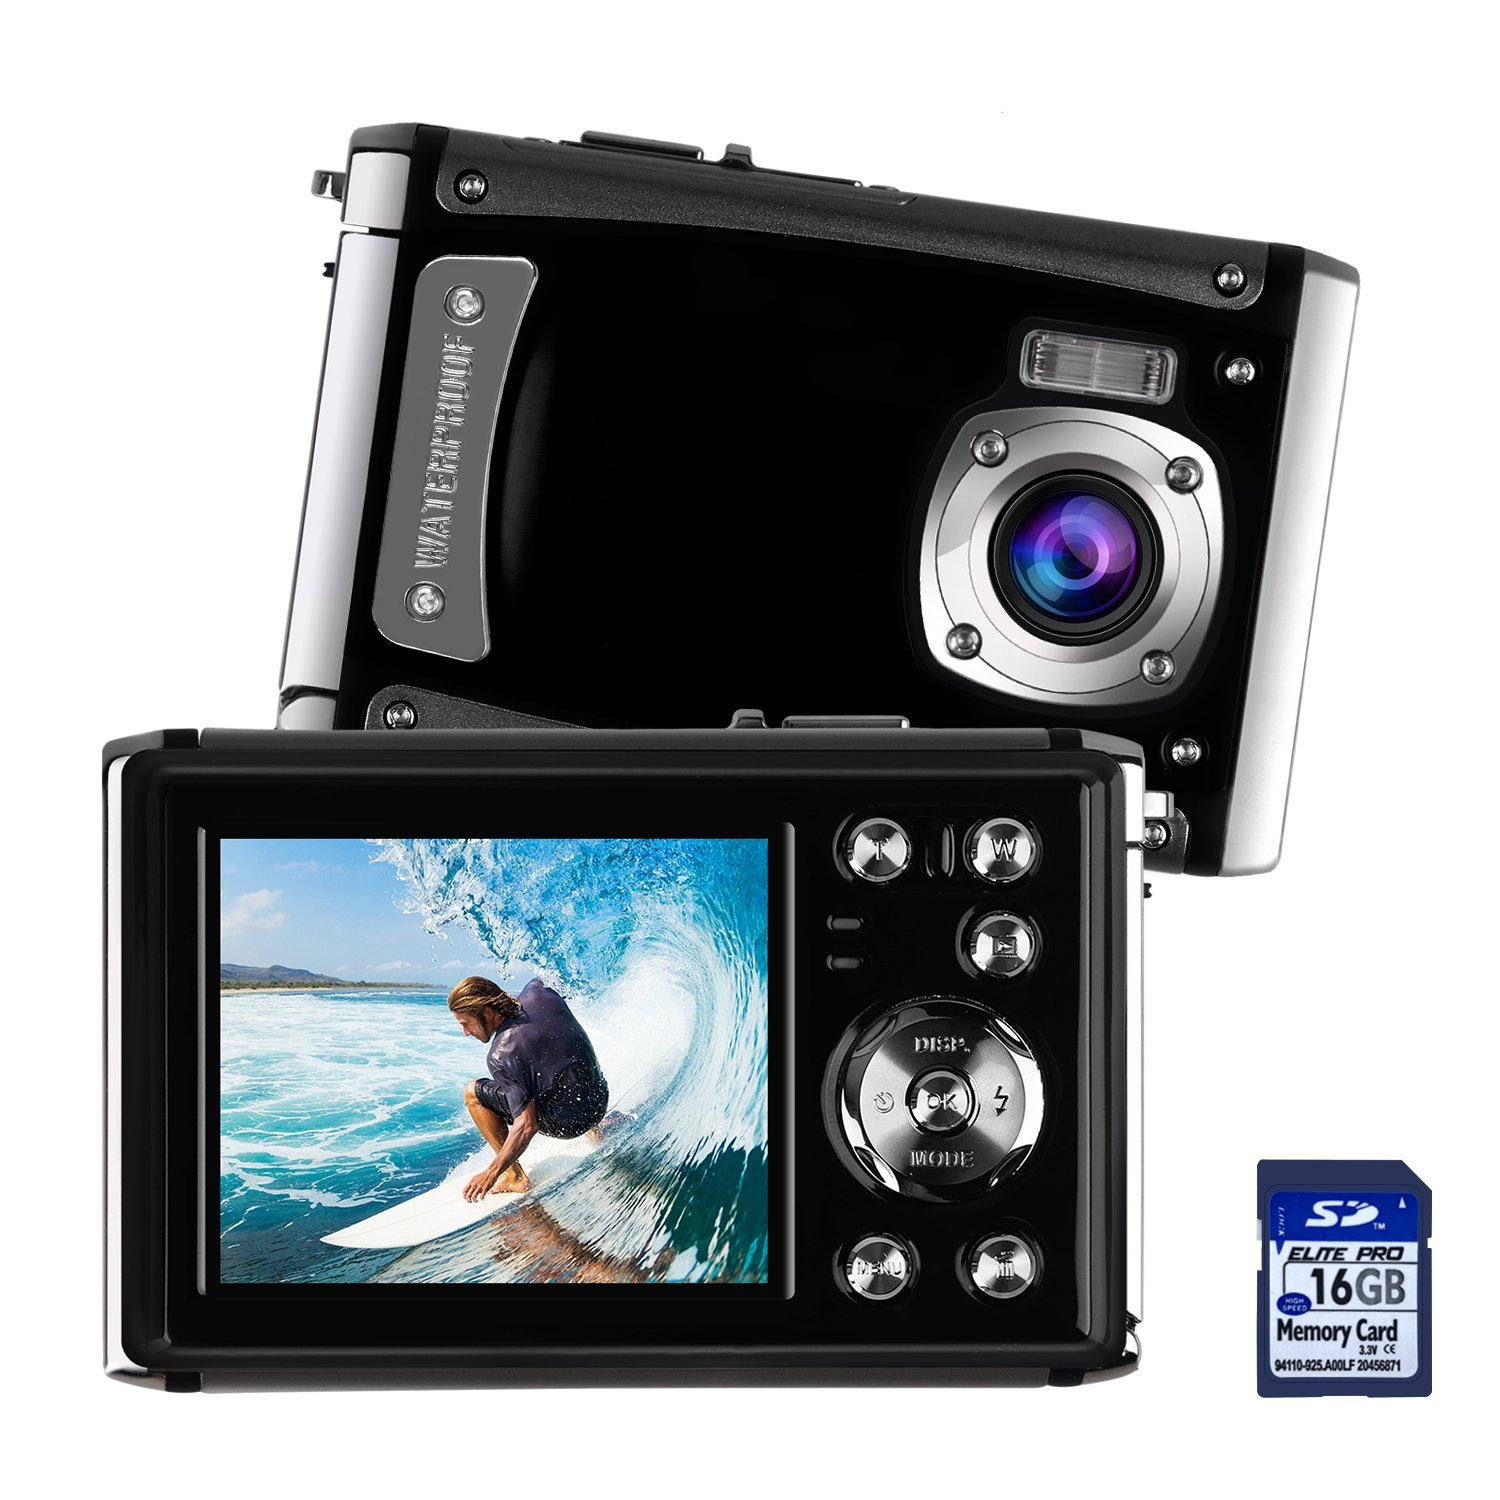 Waterproof Digital Camera for Kids, DECOMEN Underwater Sport Camera, Ultra HD 16MP Digital Kids Camera with 2.4'' LCD Screen, 8x Digital Zoom, Flash, Mic and Rechargeable Battery(16G SD Card Included)